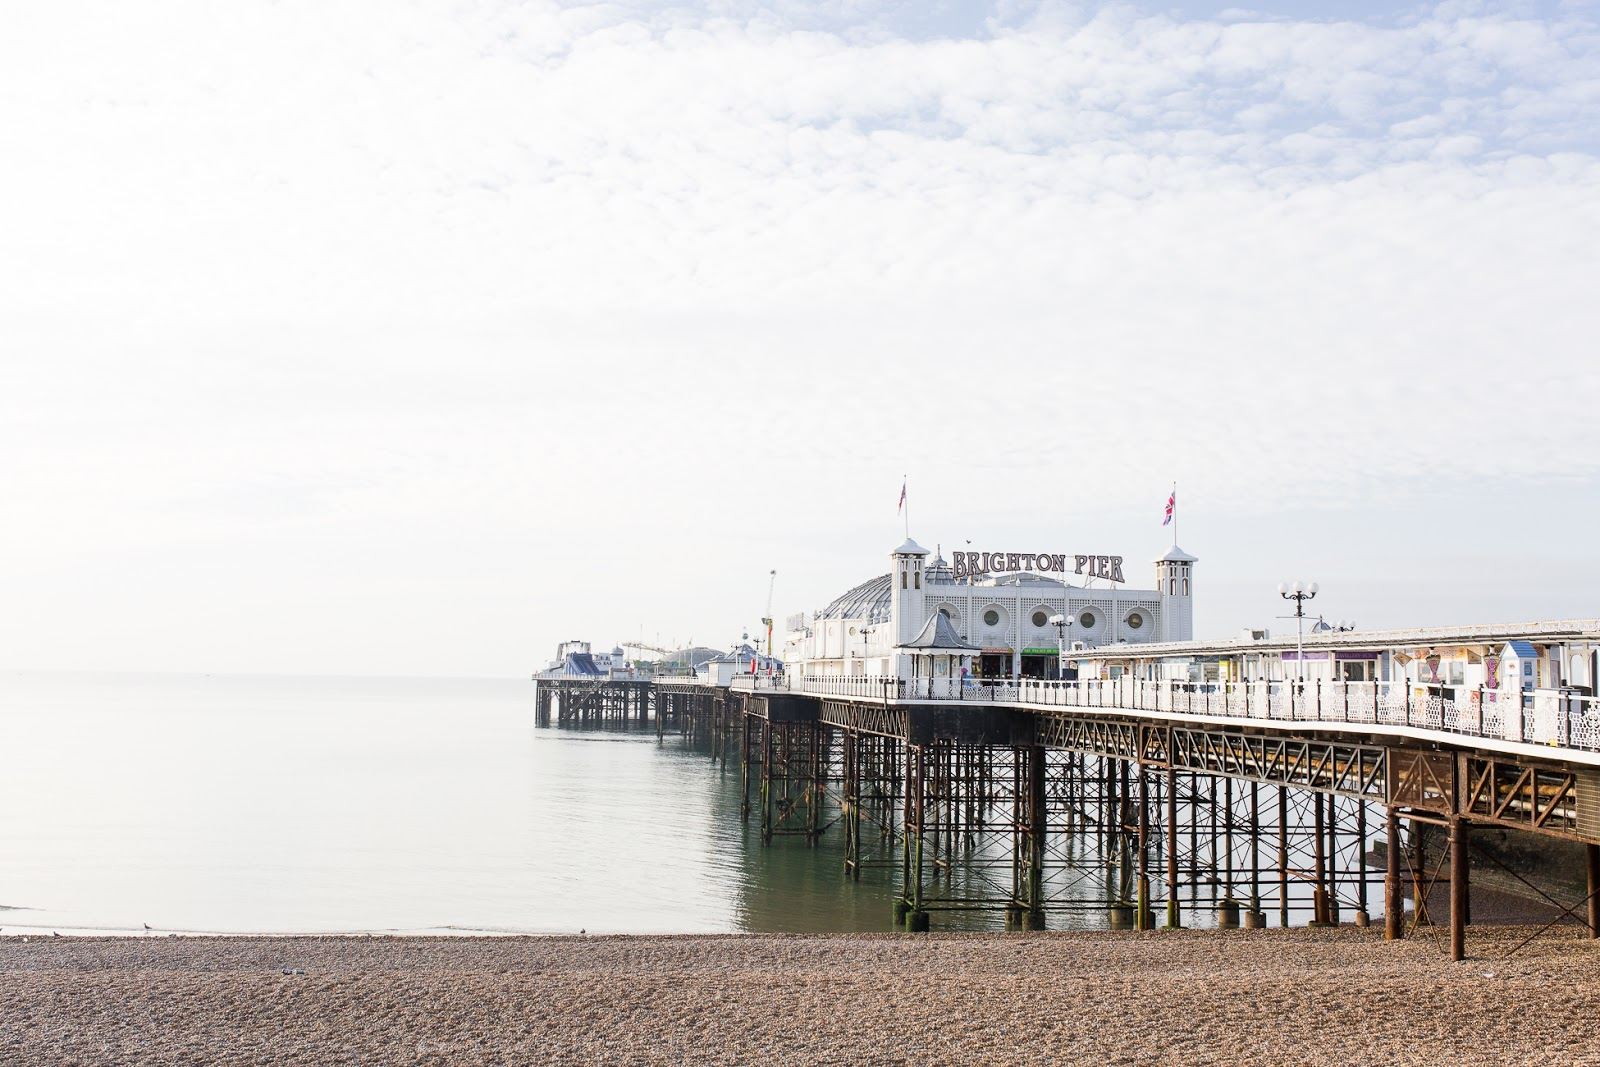 Brighton Pier/ blog.jchongstudio.com